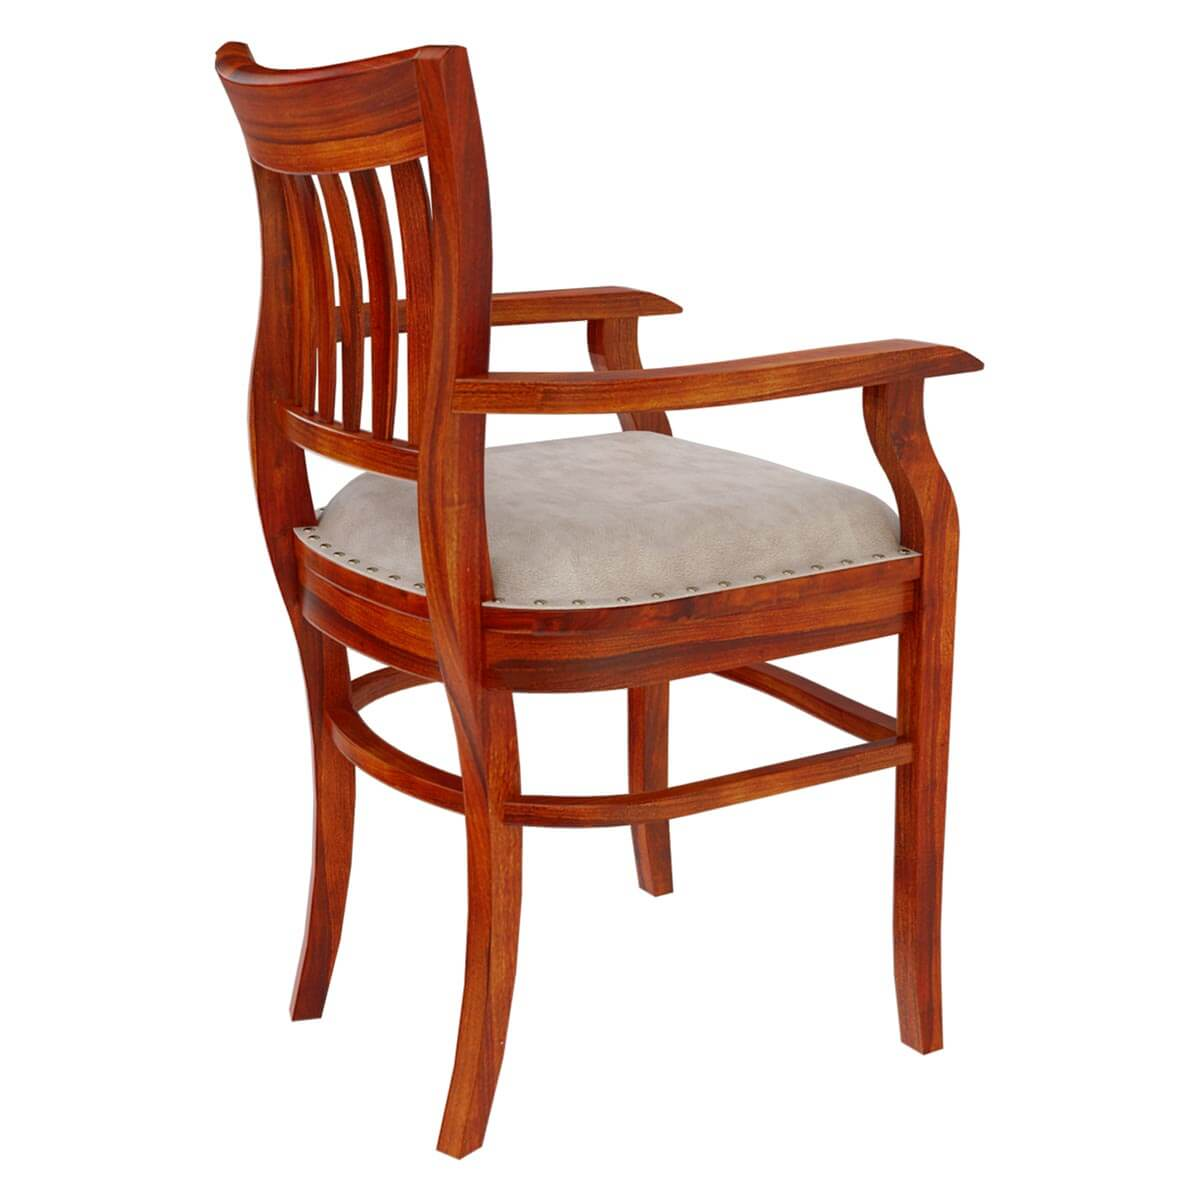 Wood Arm Chair Solid Wood Arm Chair Leather Cushion Dining Furniture